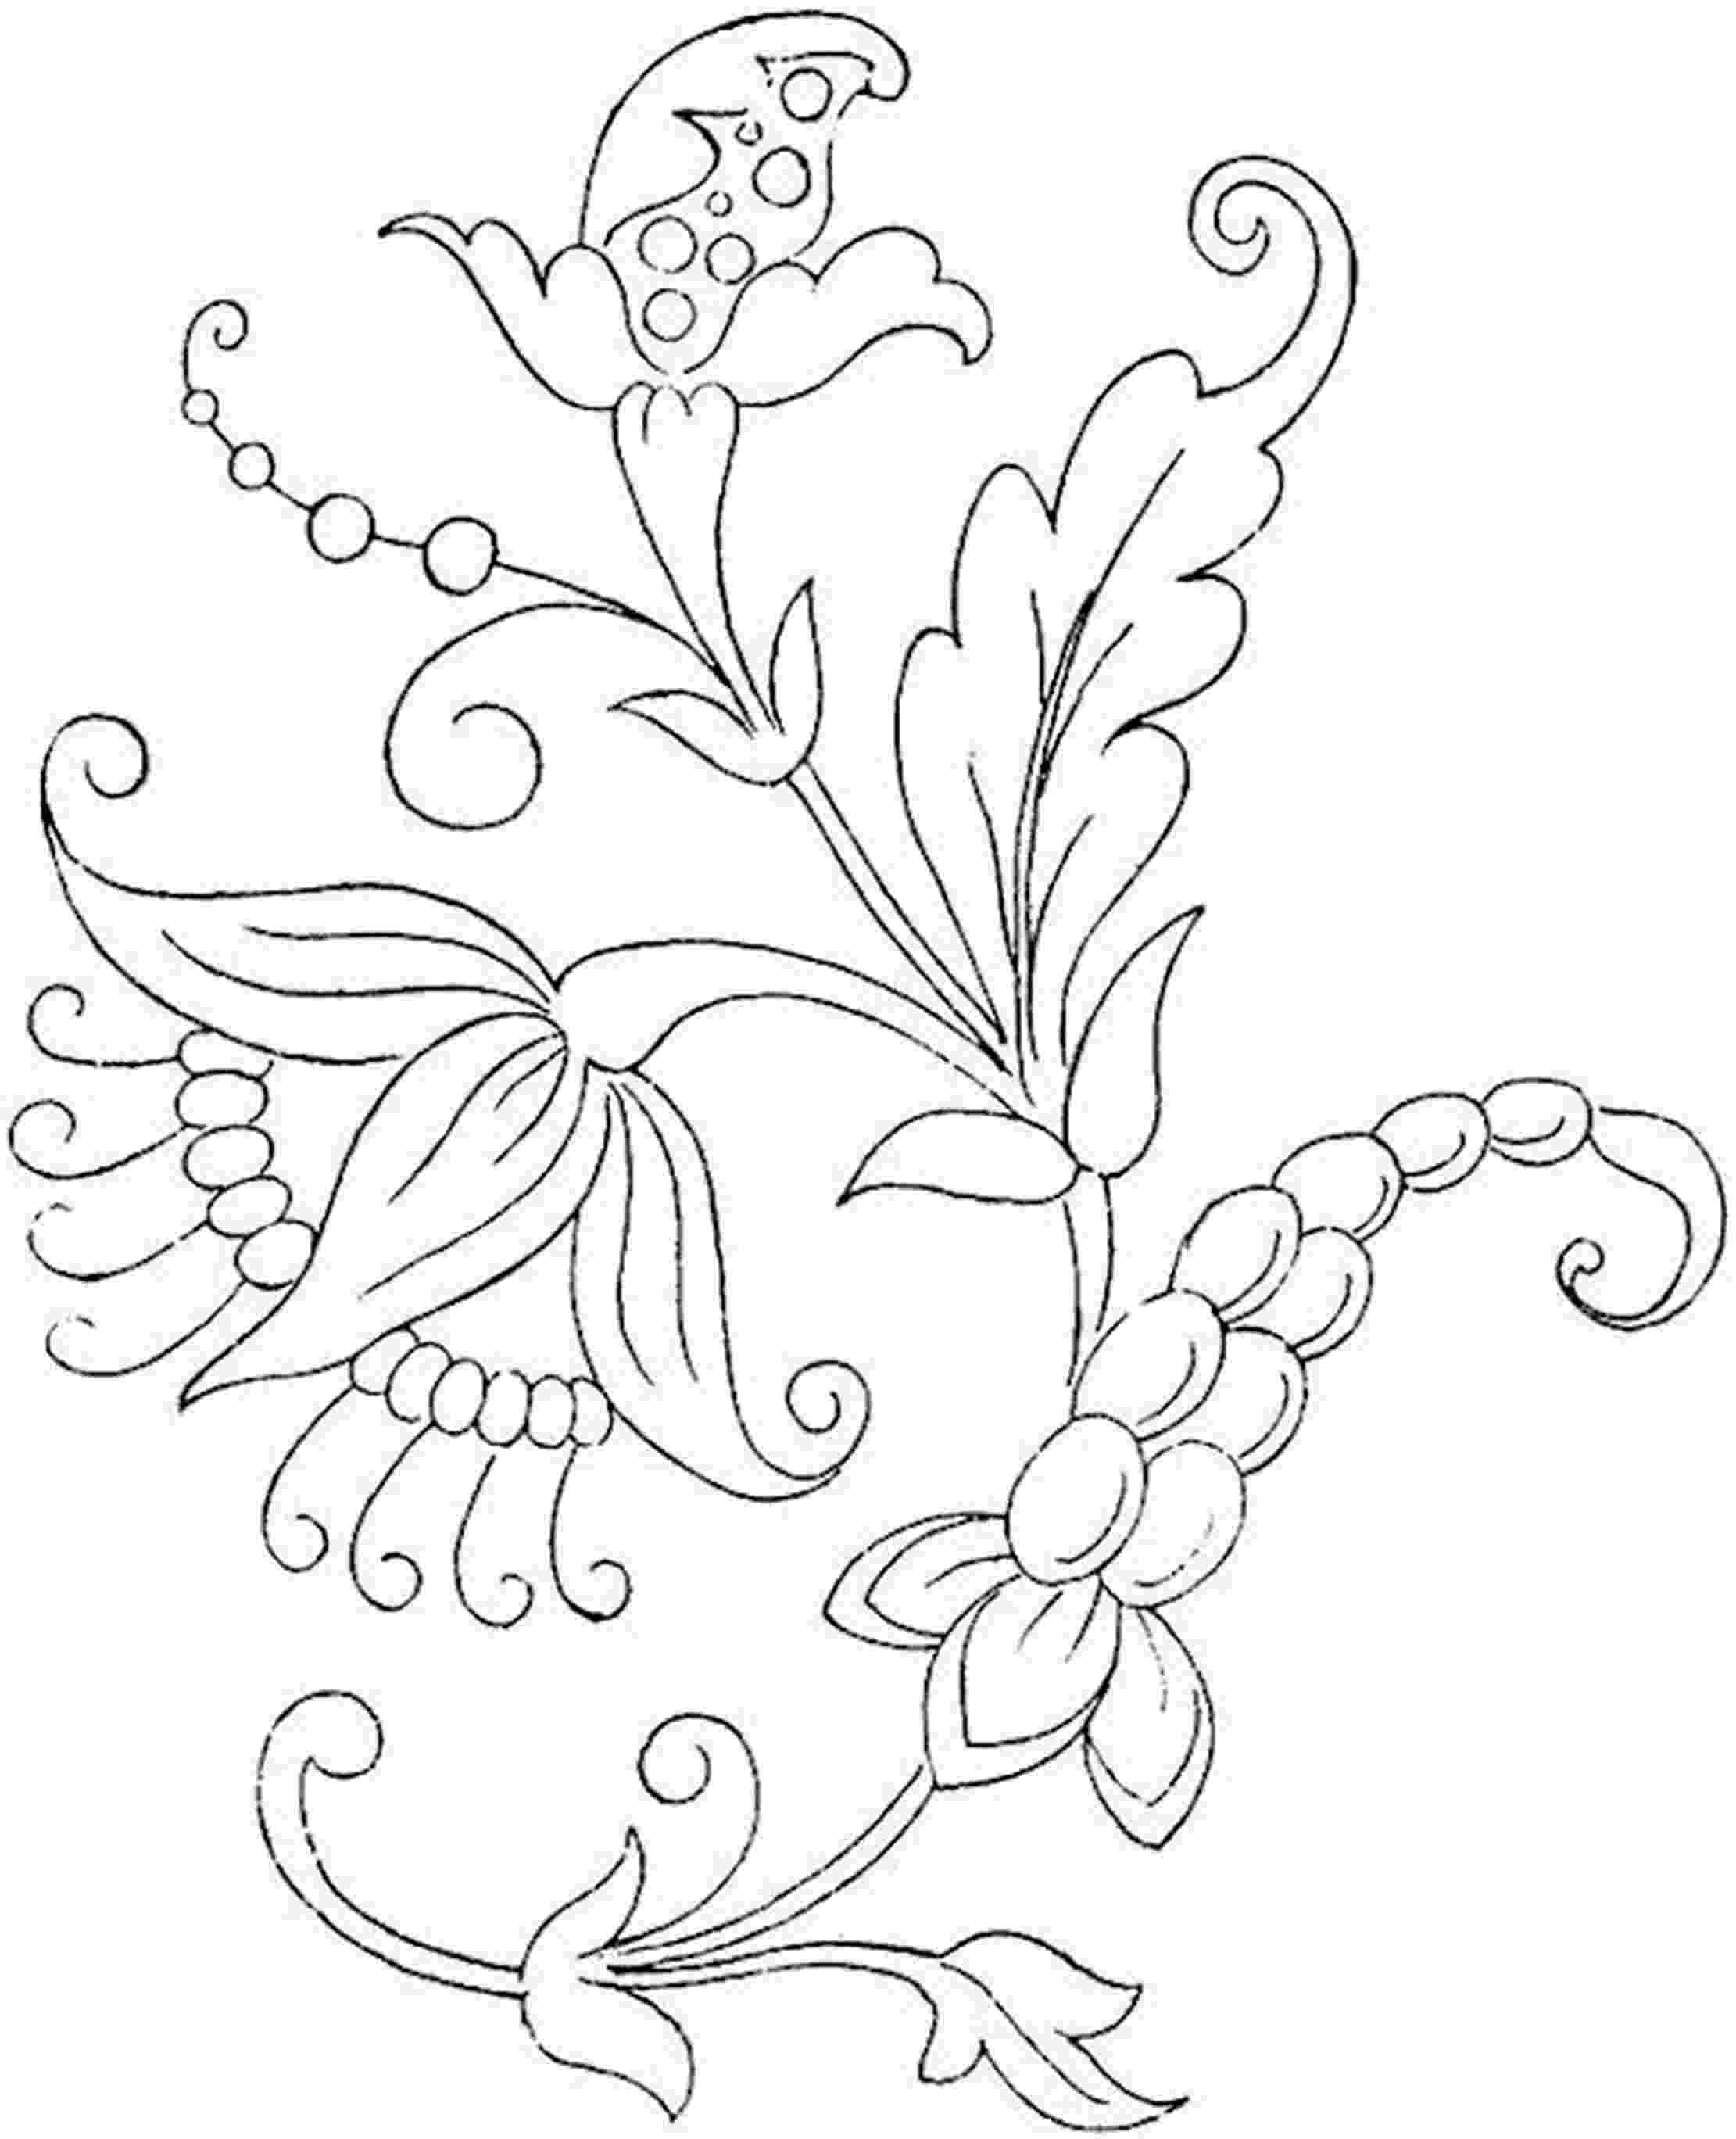 flower colouring pages to print free printable flower coloring pages for kids best flower print colouring pages to